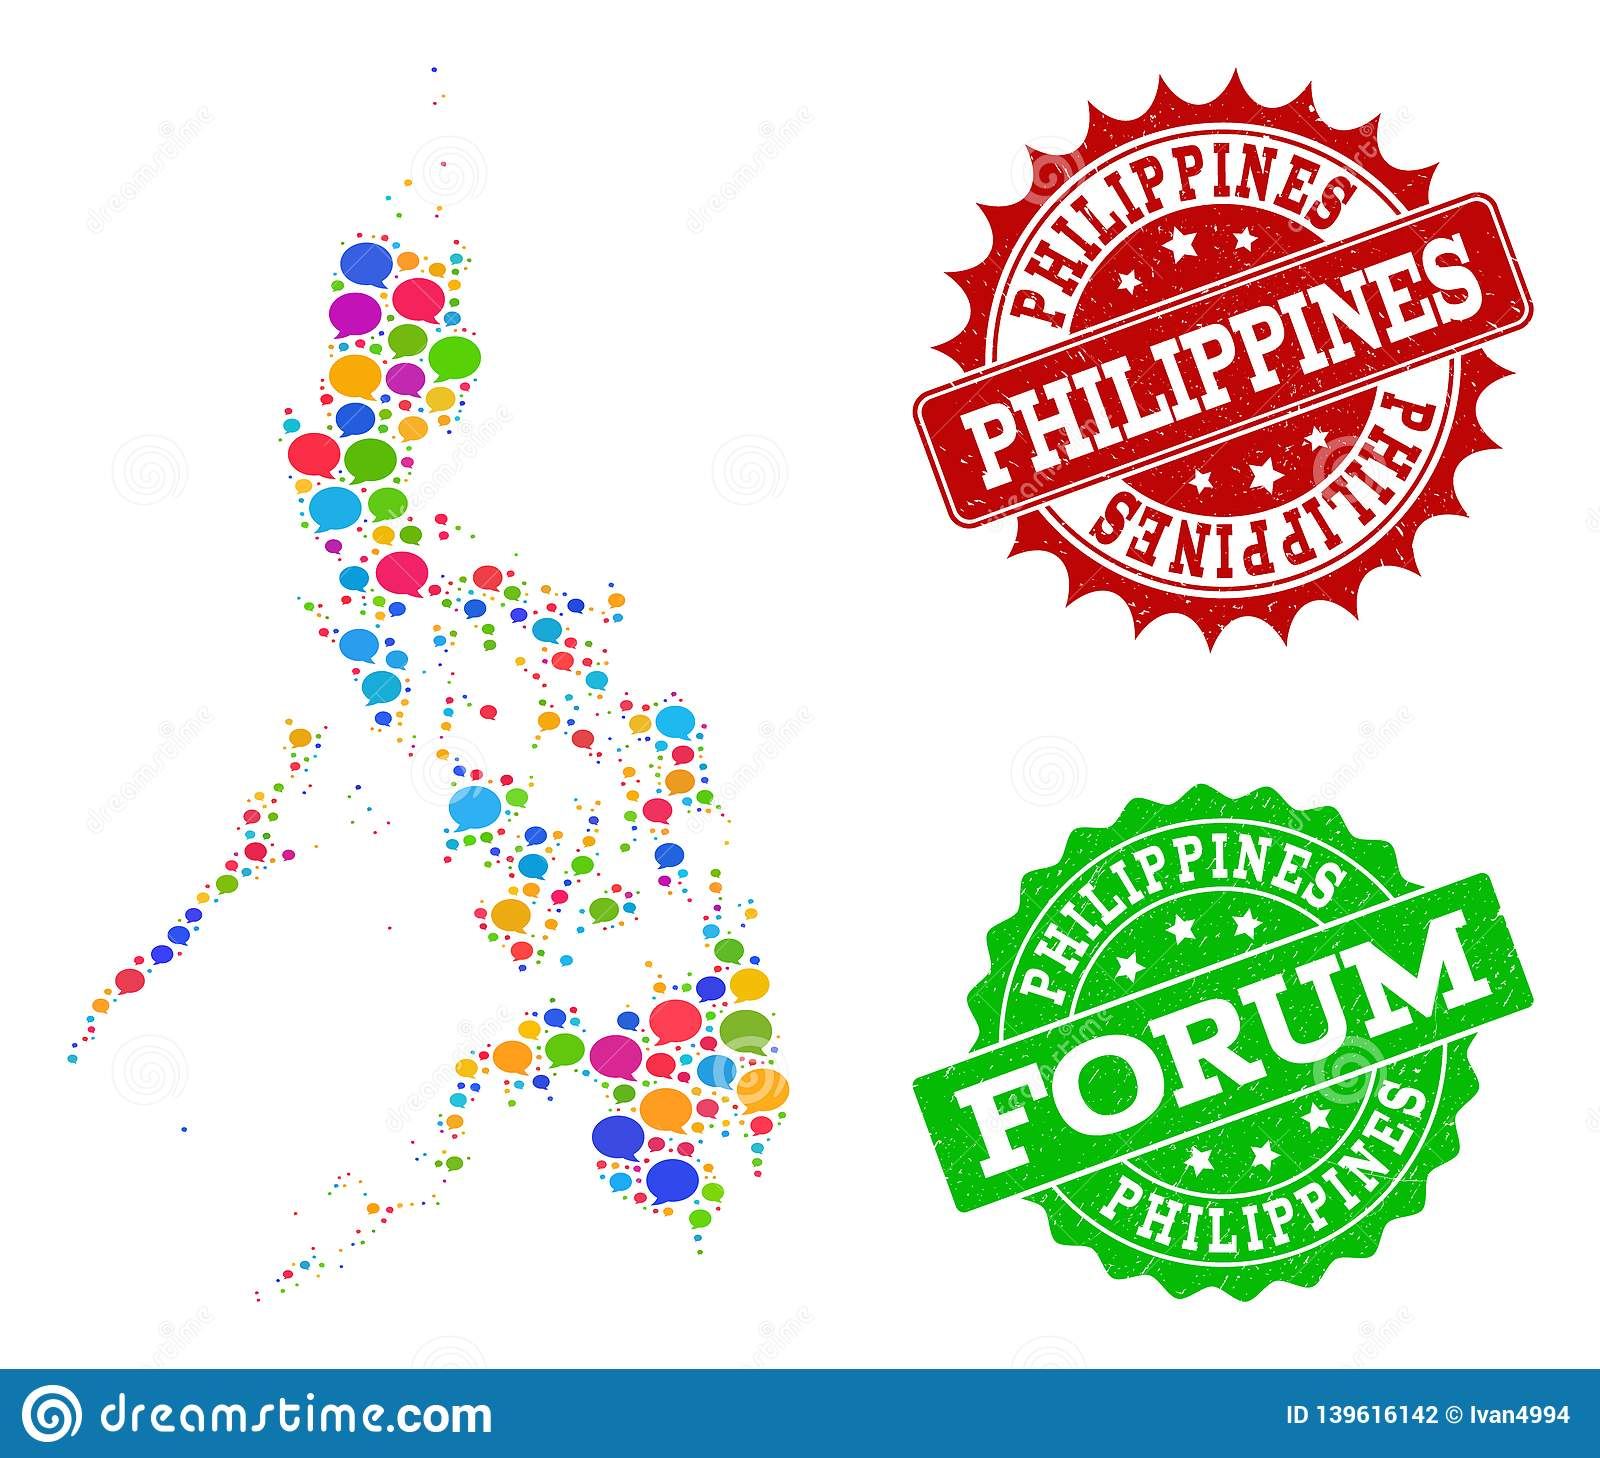 Social Network Map Of Philippines With Chat Clouds And ... on